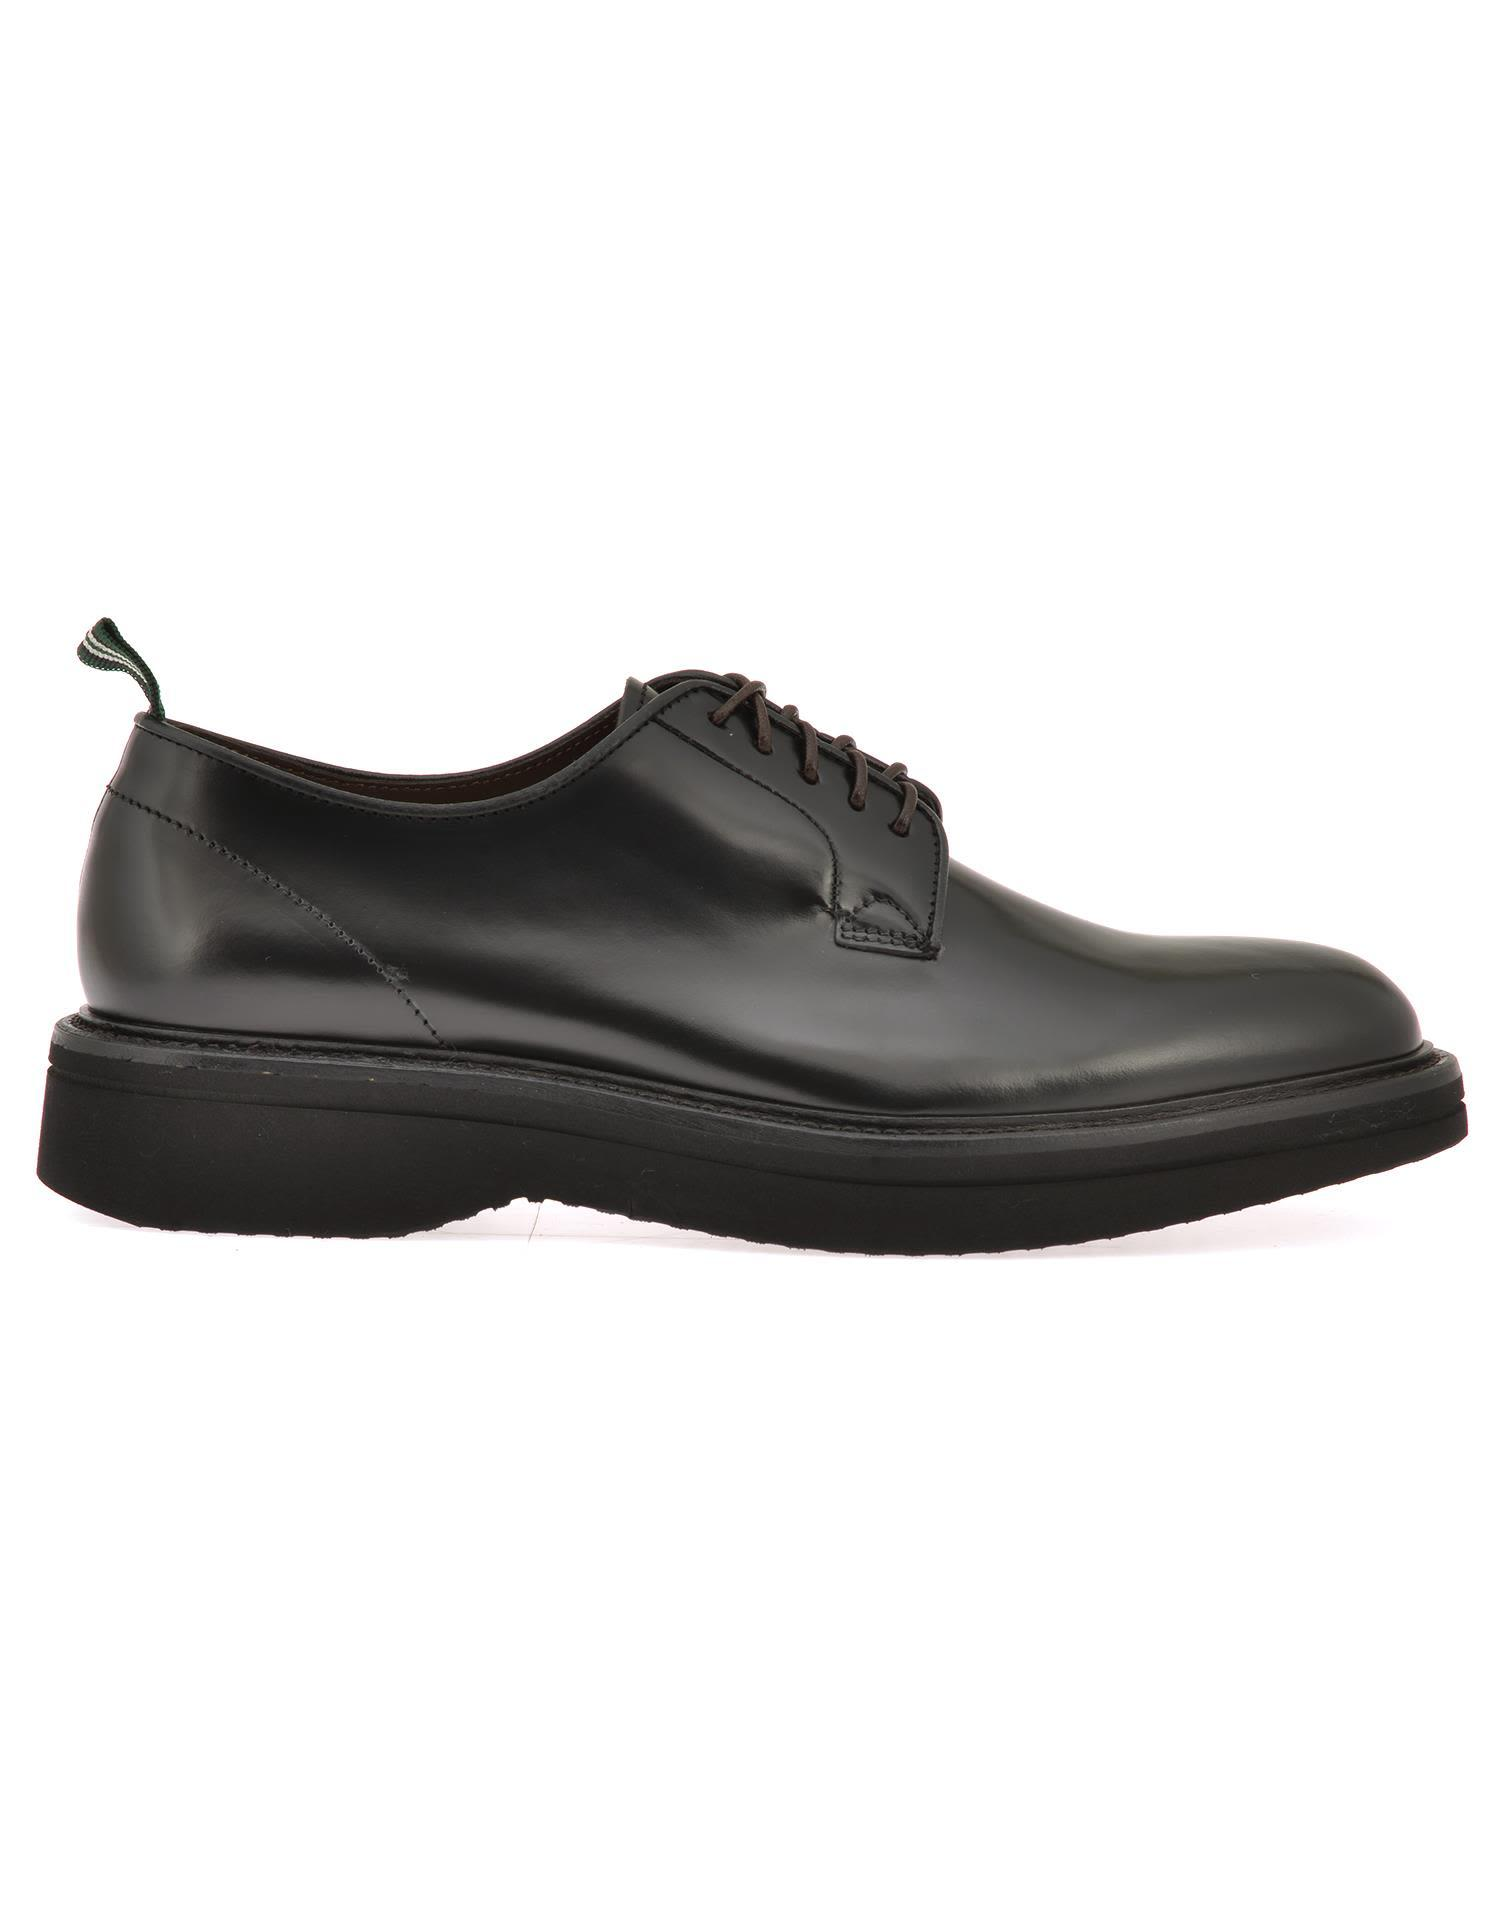 Green George Leather Lace-up Shoes In Black